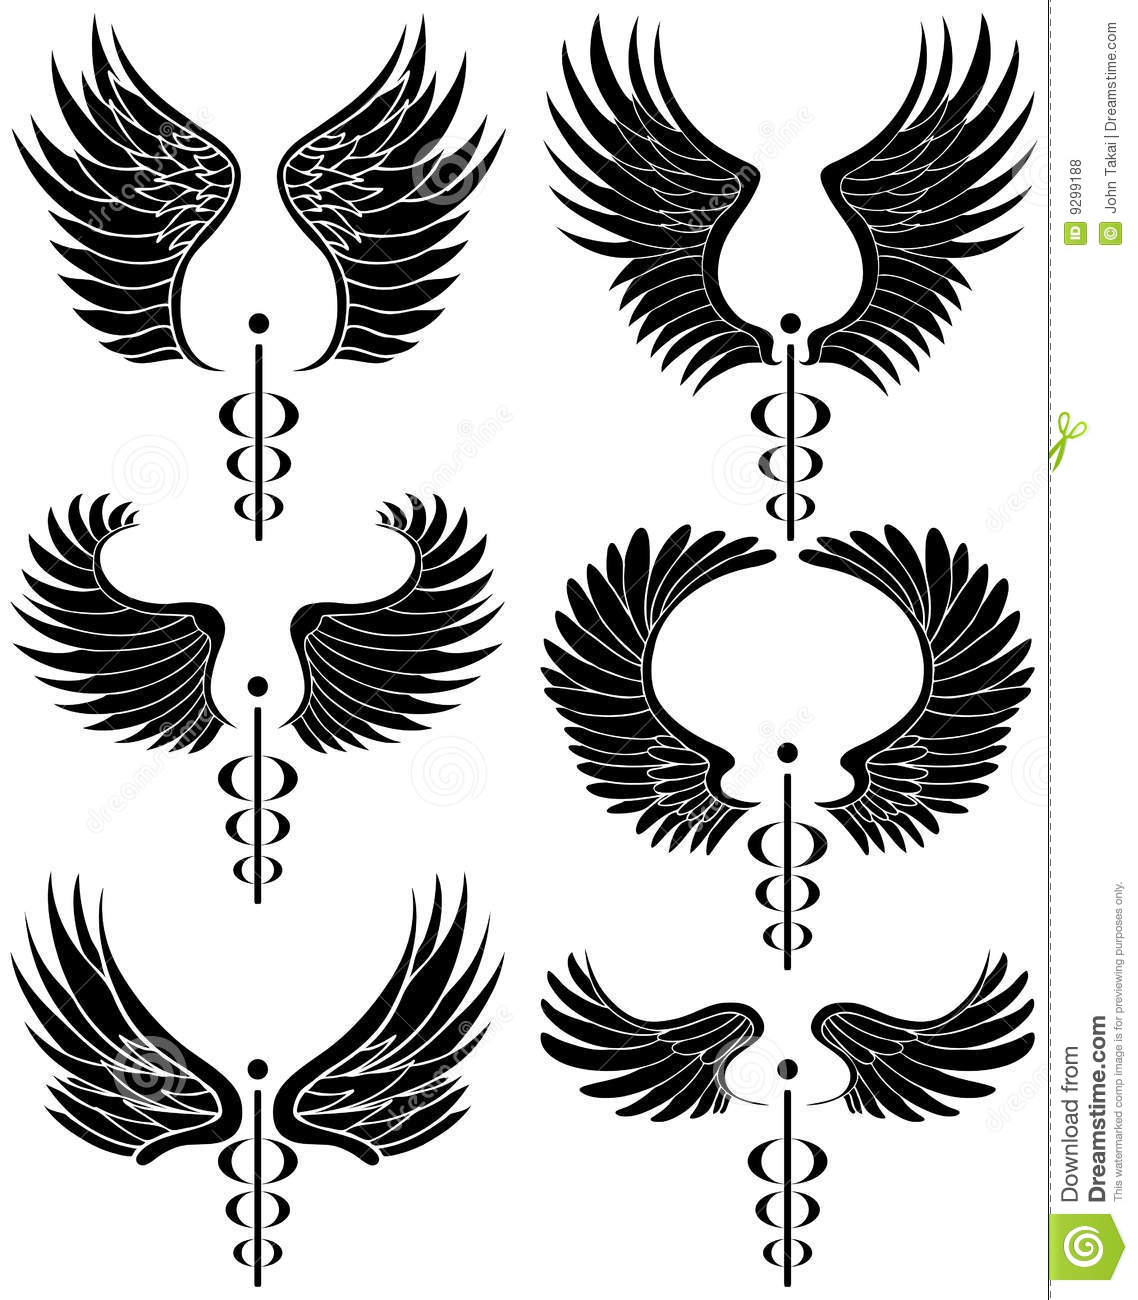 Caduceus Vector Clip Art  vector zip file 009 MB Open office drawing svg  svg  format symbol free medicine caduceus ryland sanders hermes caduceu caduceus caduceus clip clip caduceus clip art eps caduceus clip art vector Get this vector art for cool business card design banner design ideas quality wallpaper or an eye catching backdrop for your graphic wallpaper illustration or